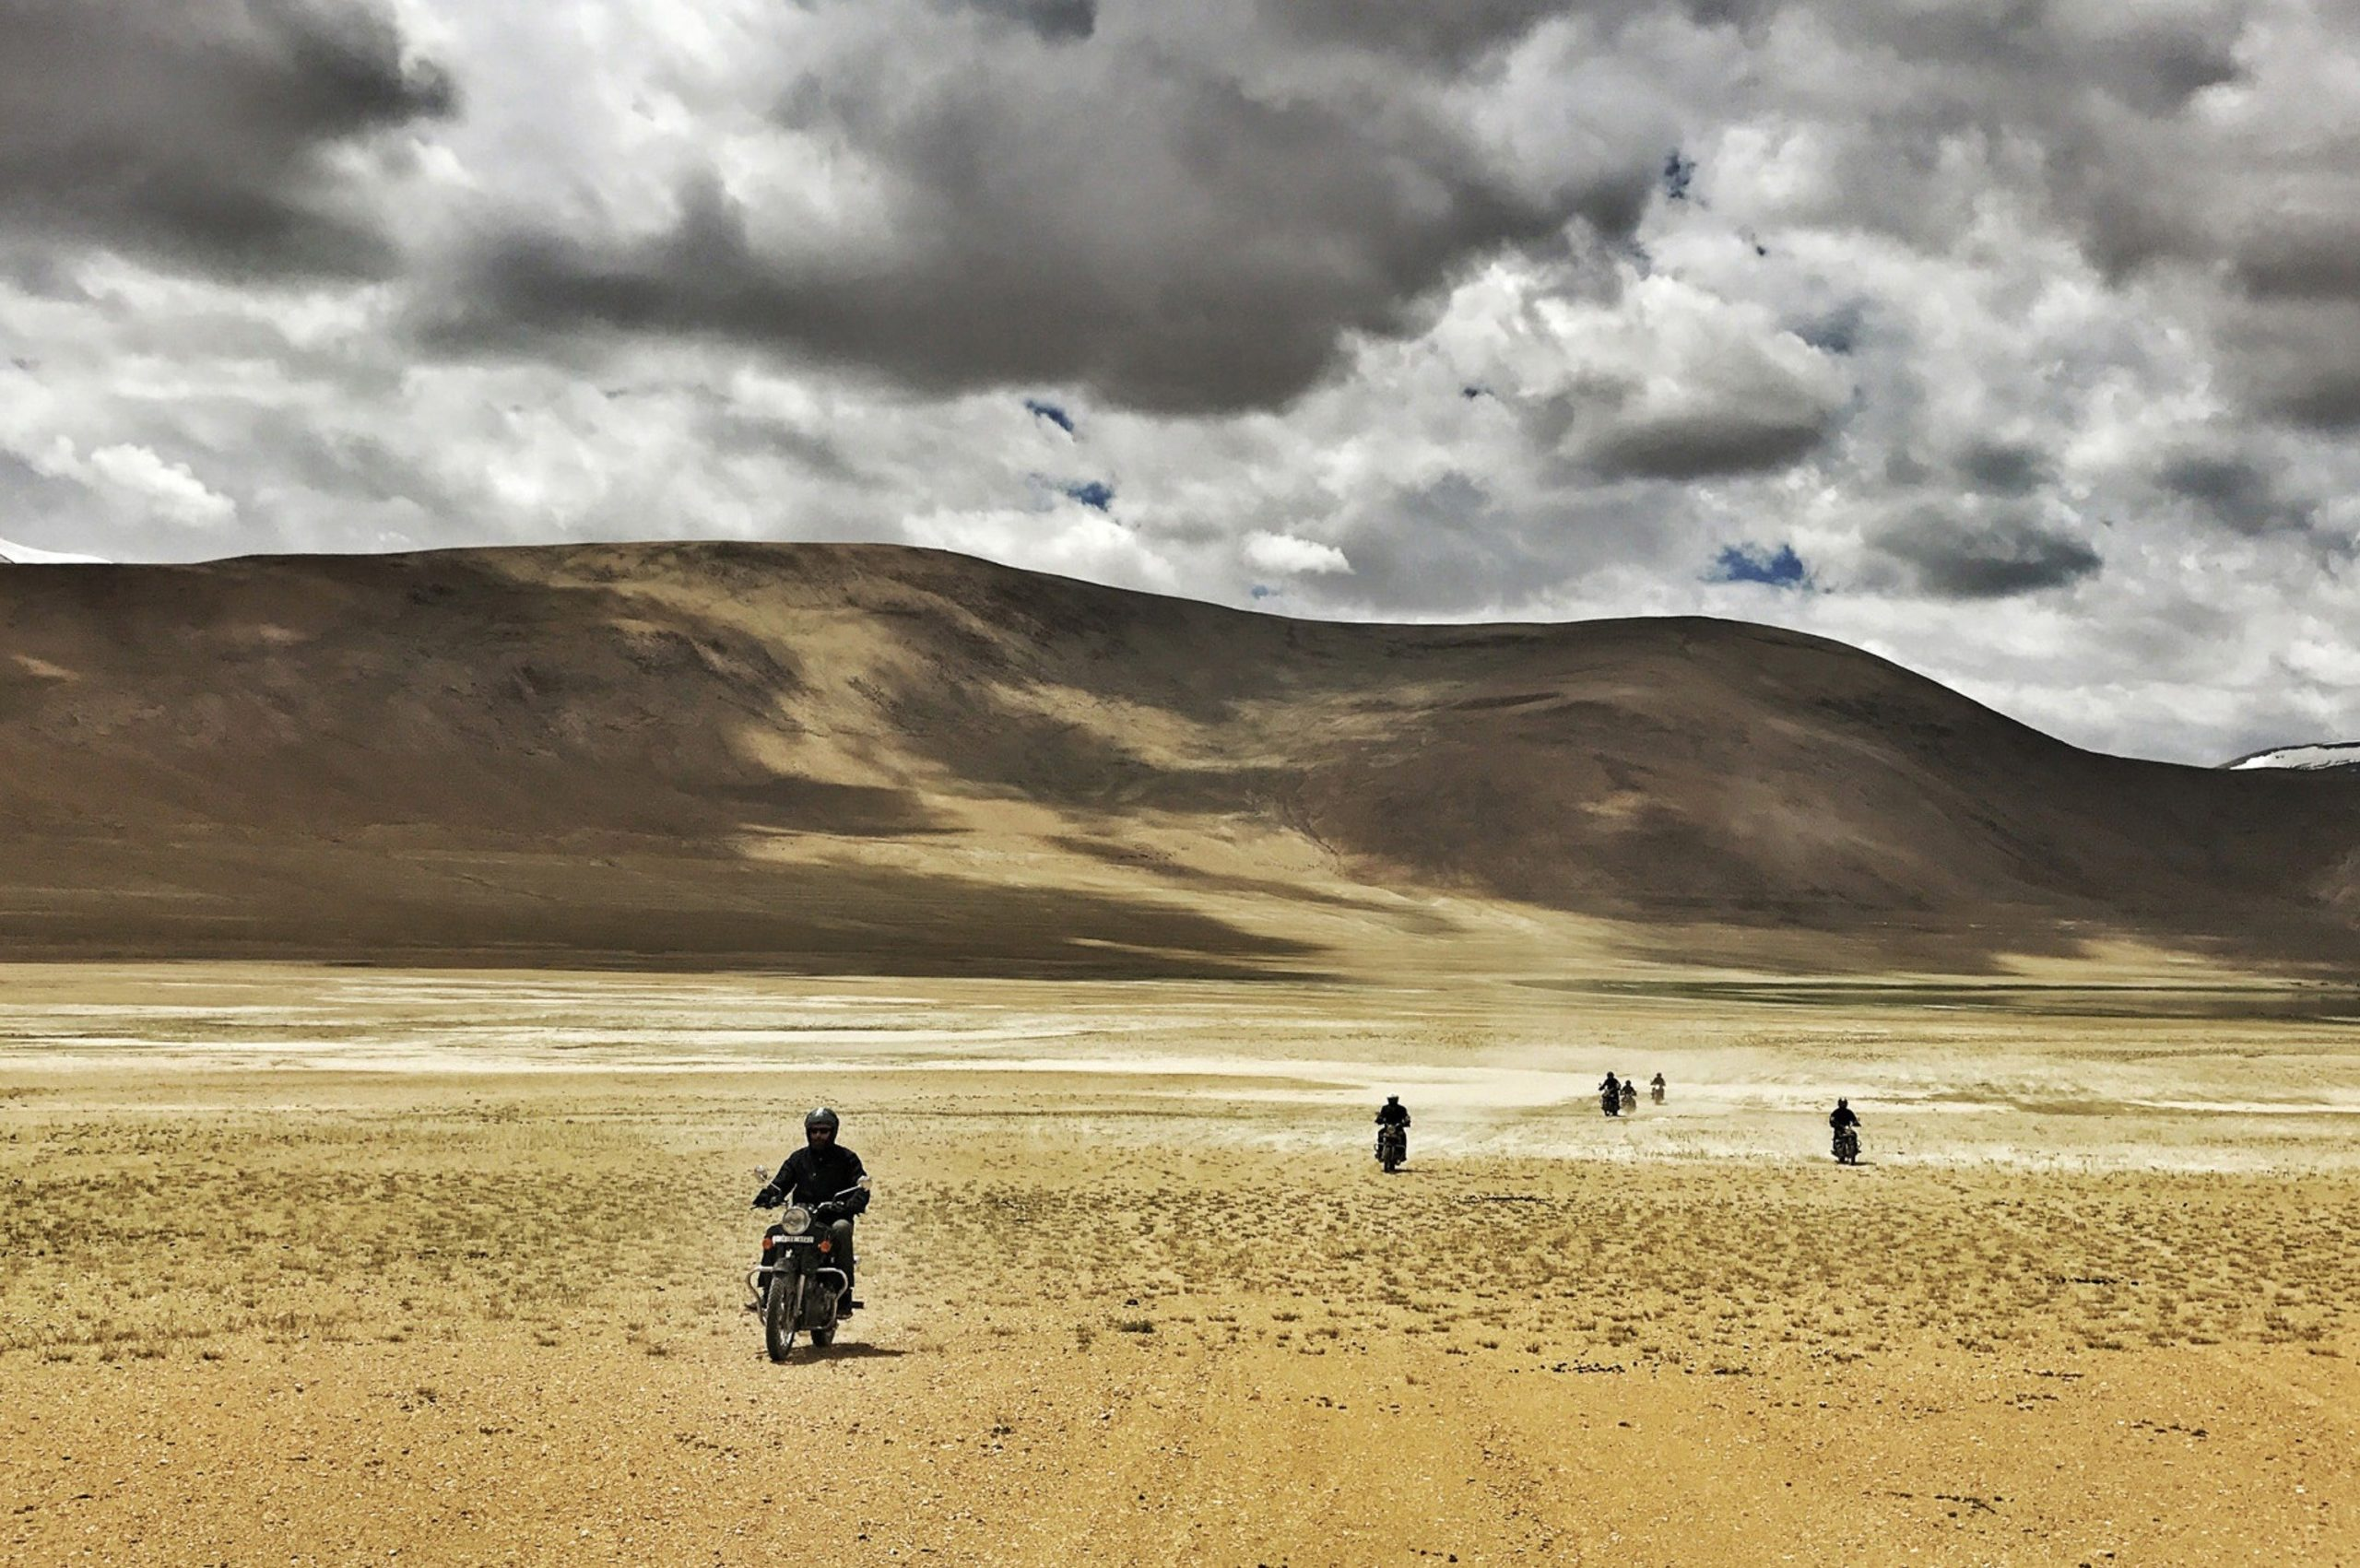 Motorcycle road trip India / Himalaya - The Trans-Himalayan